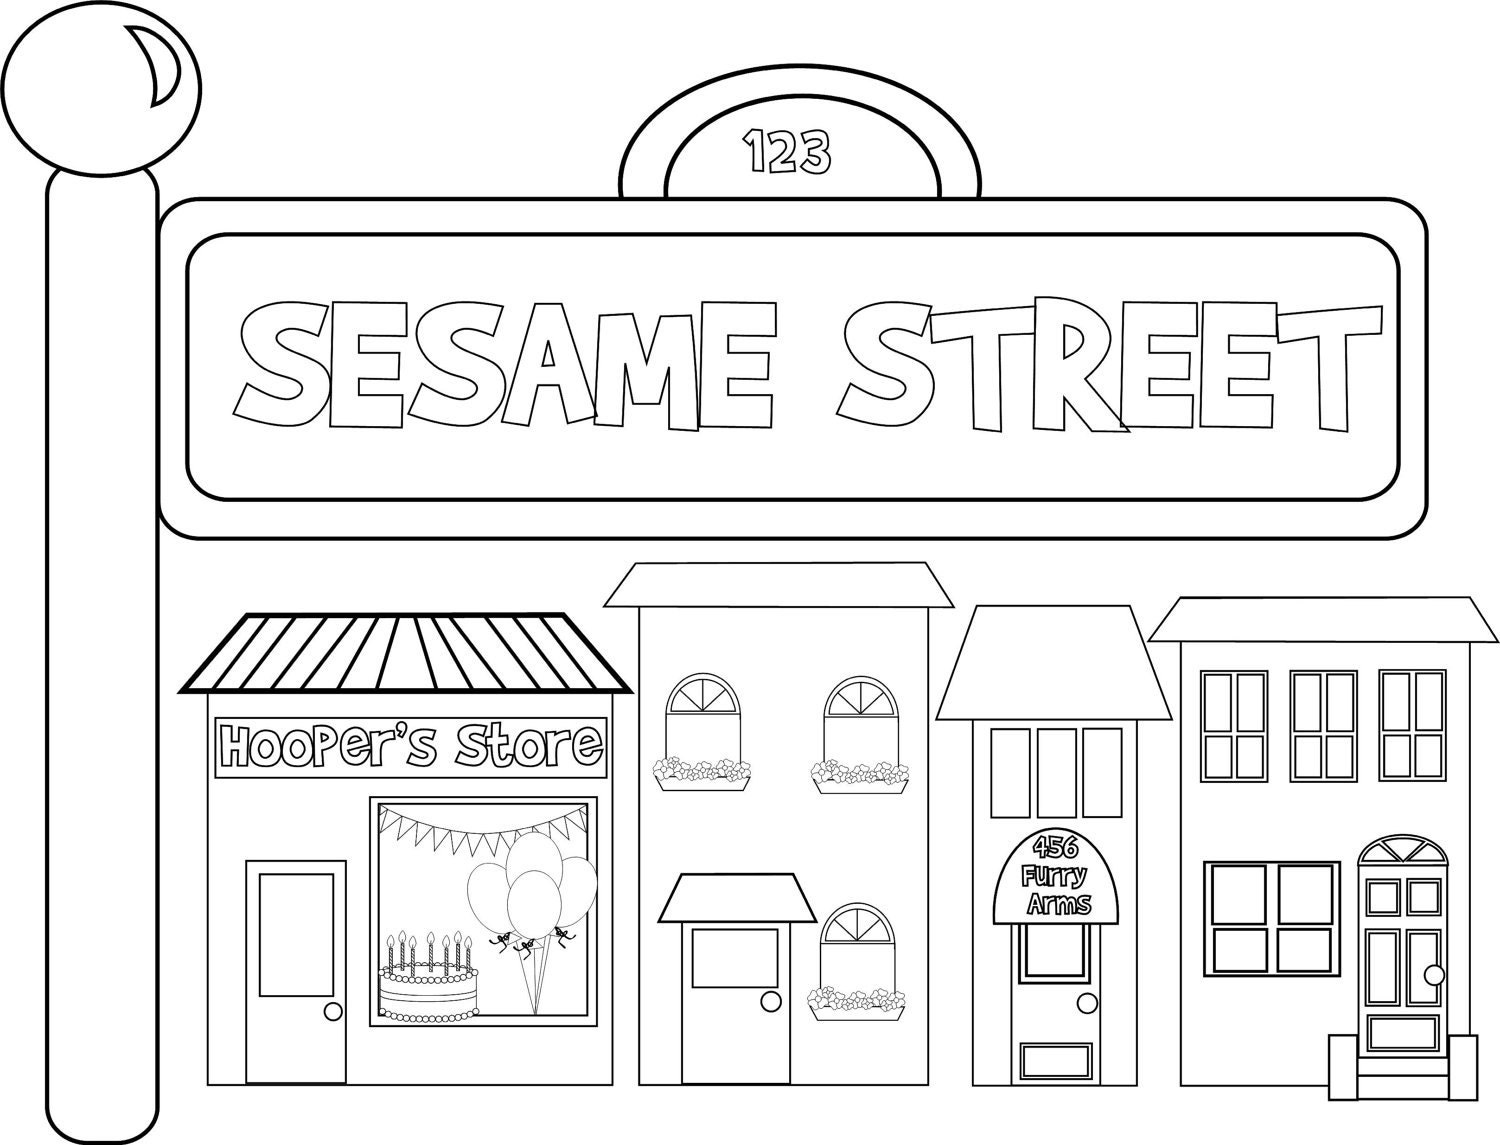 sesame street sign coloring pages - photo#4